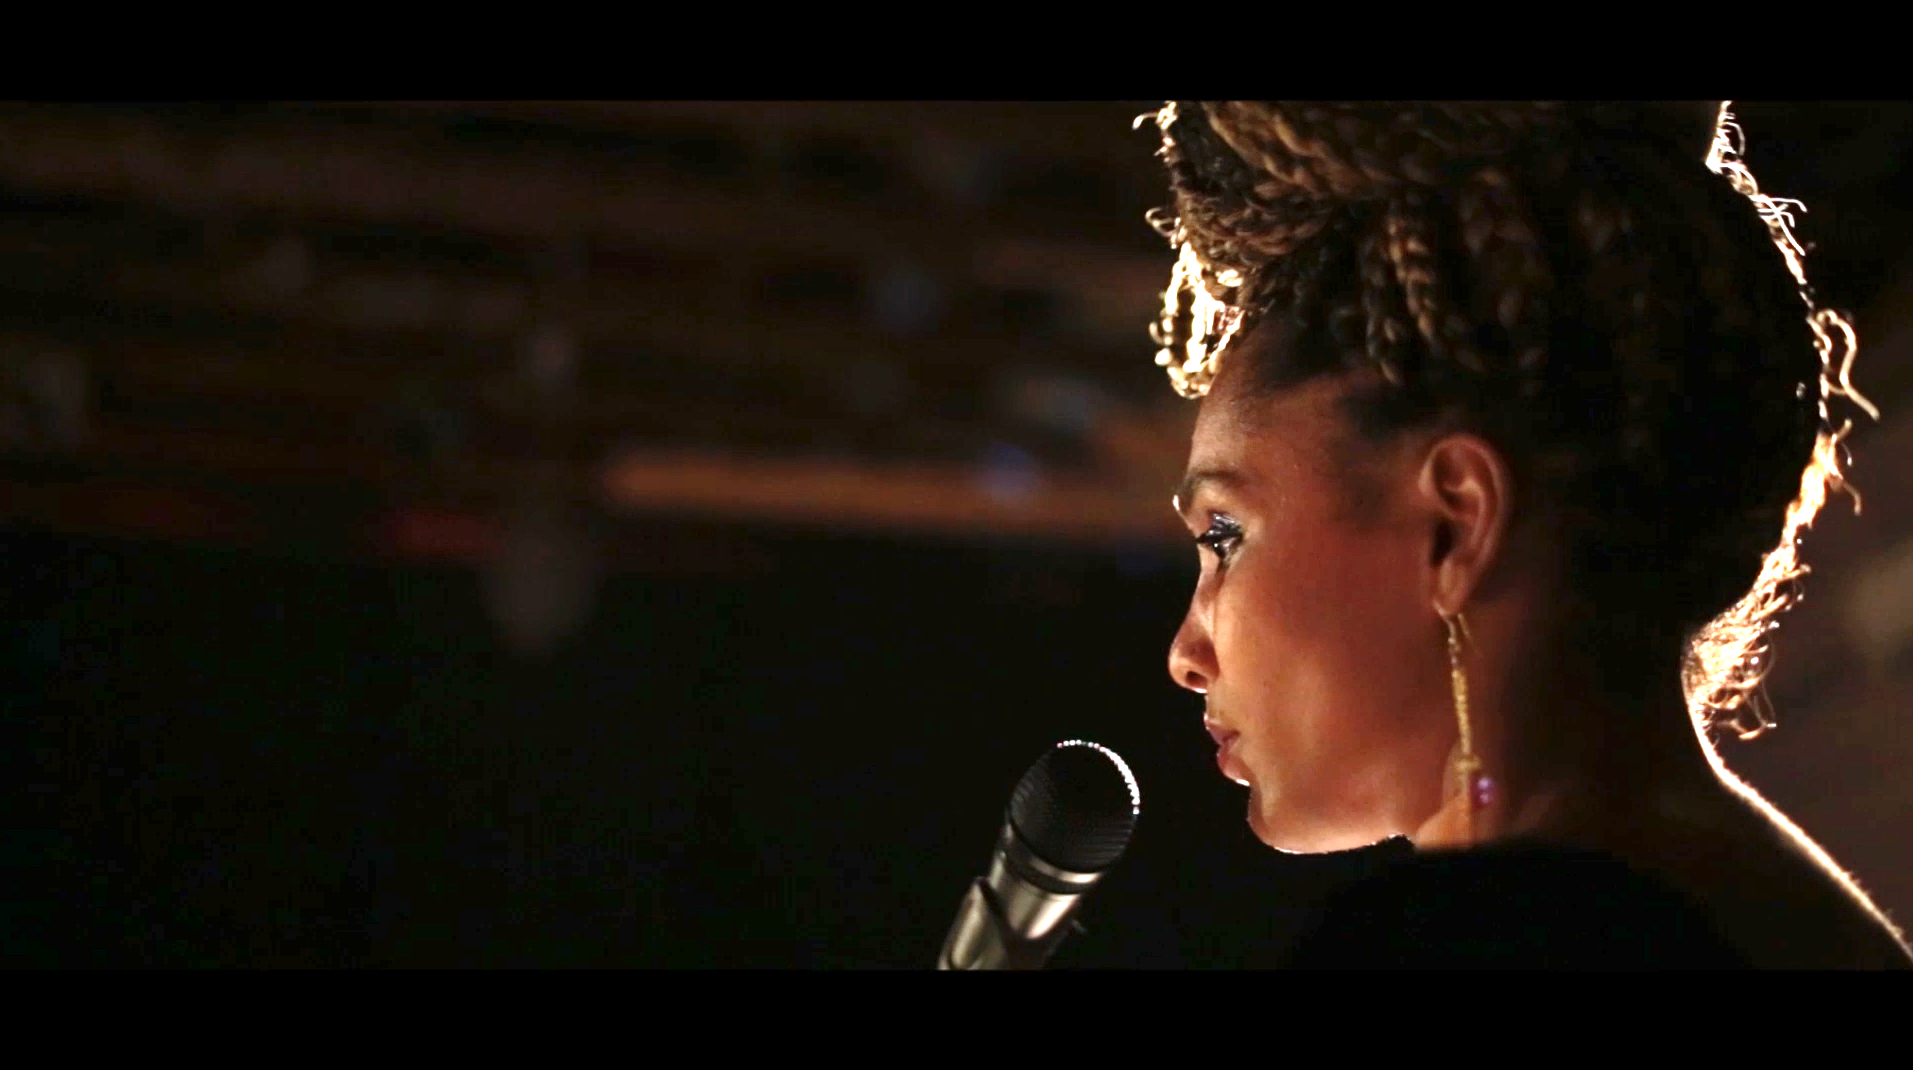 Iris P Live at the Art Klub in New Orleans